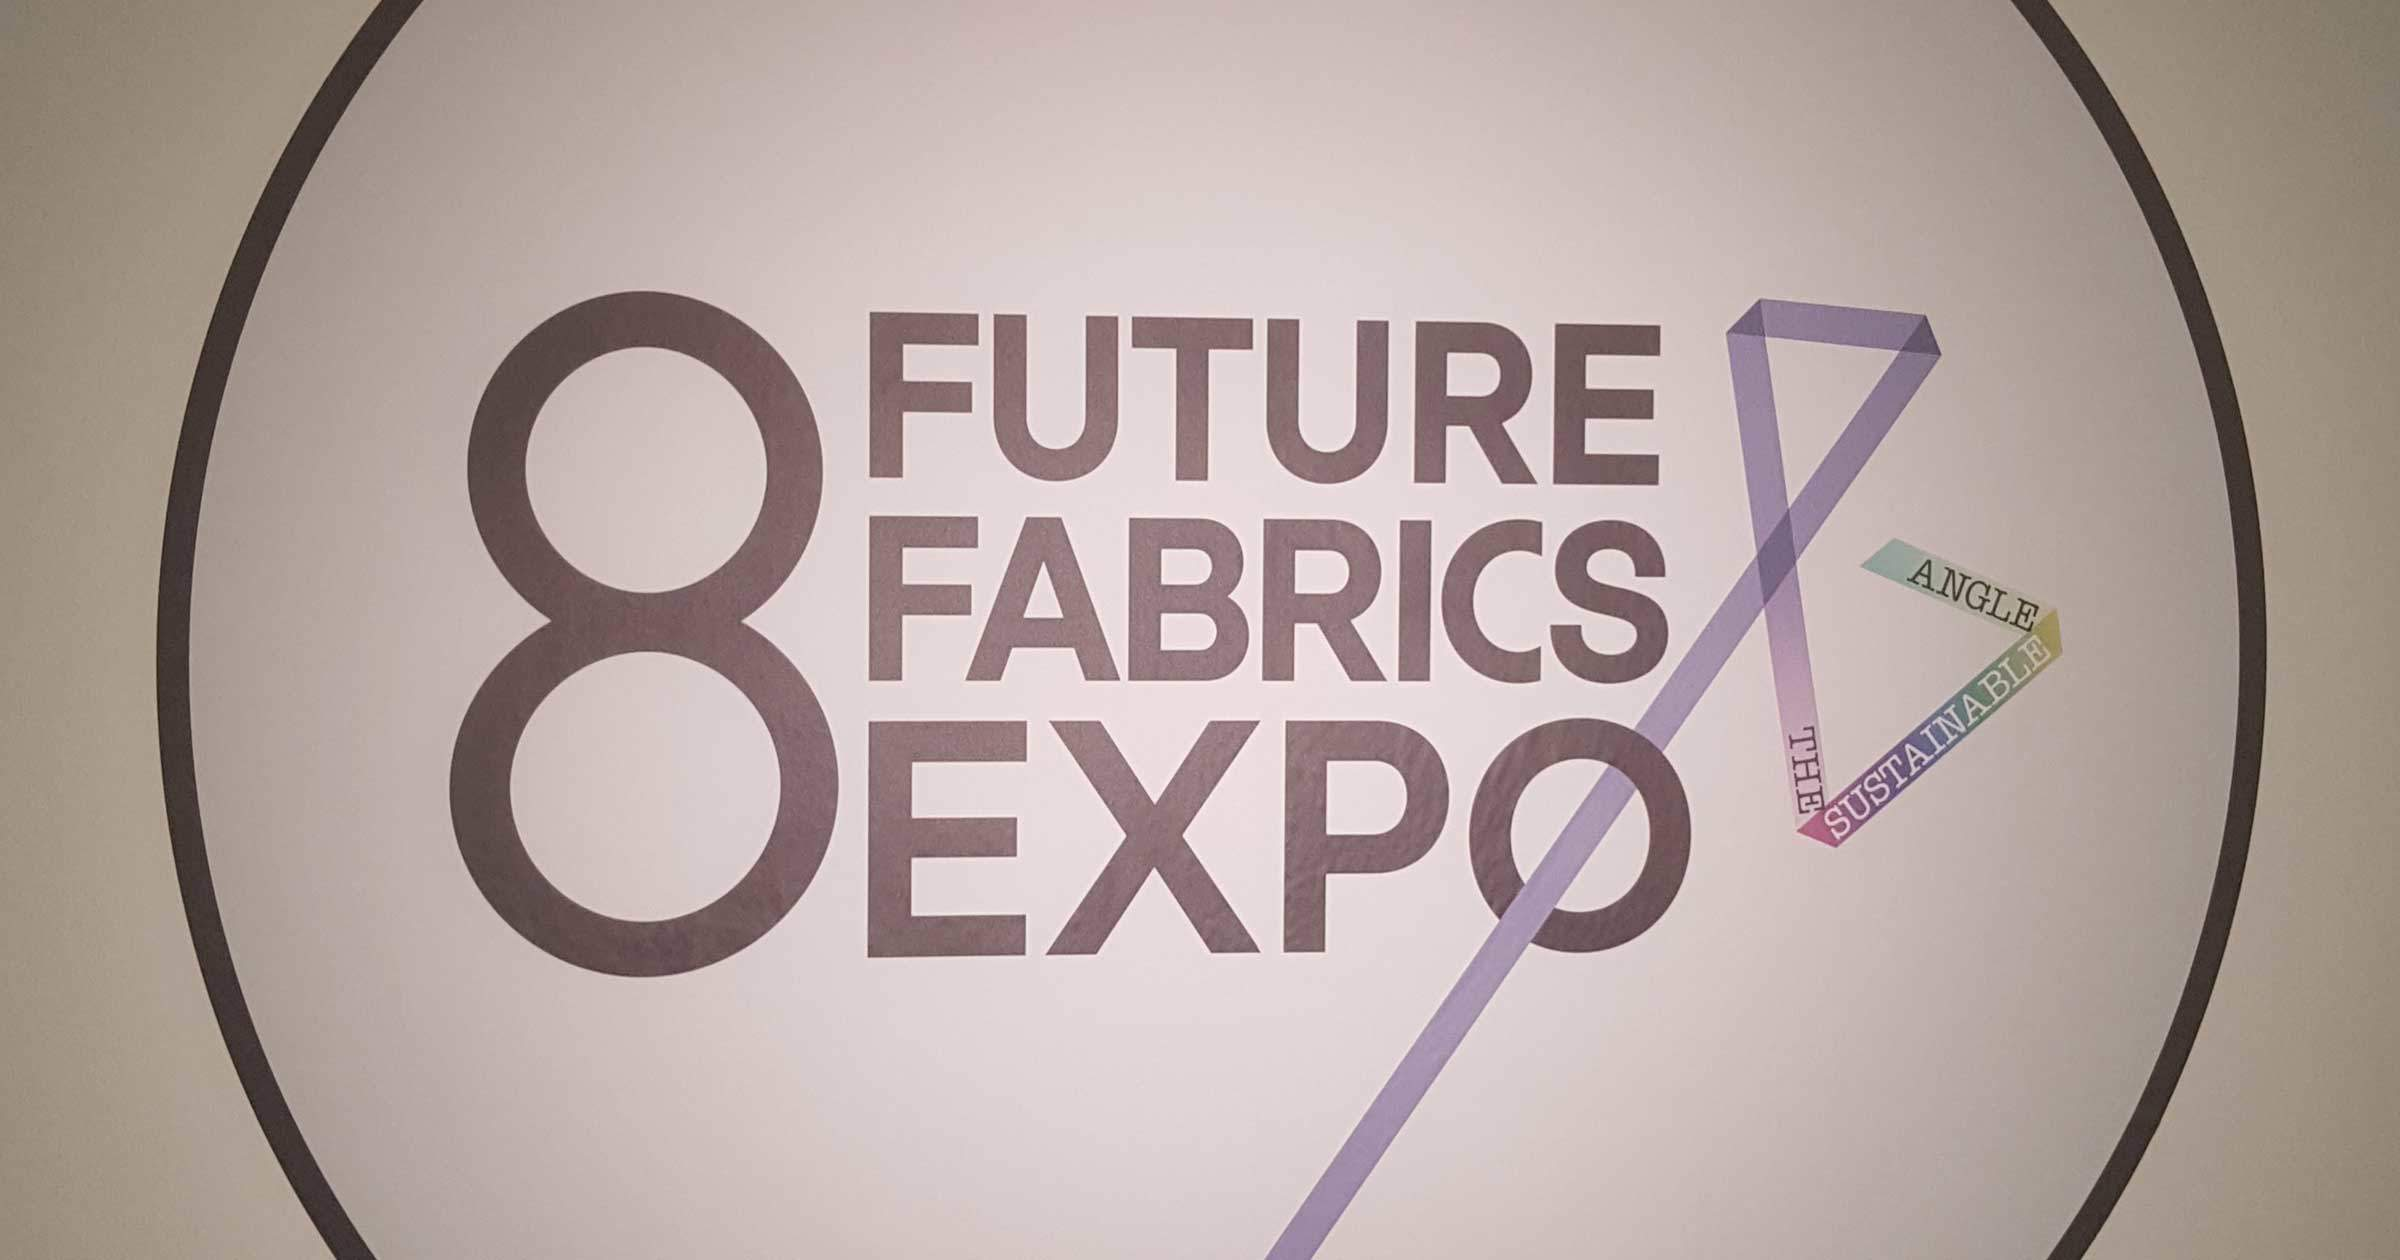 8th Future Fabrics Expo 2019, The Sustainable Angle | The Tundra, Watson & Wolfe